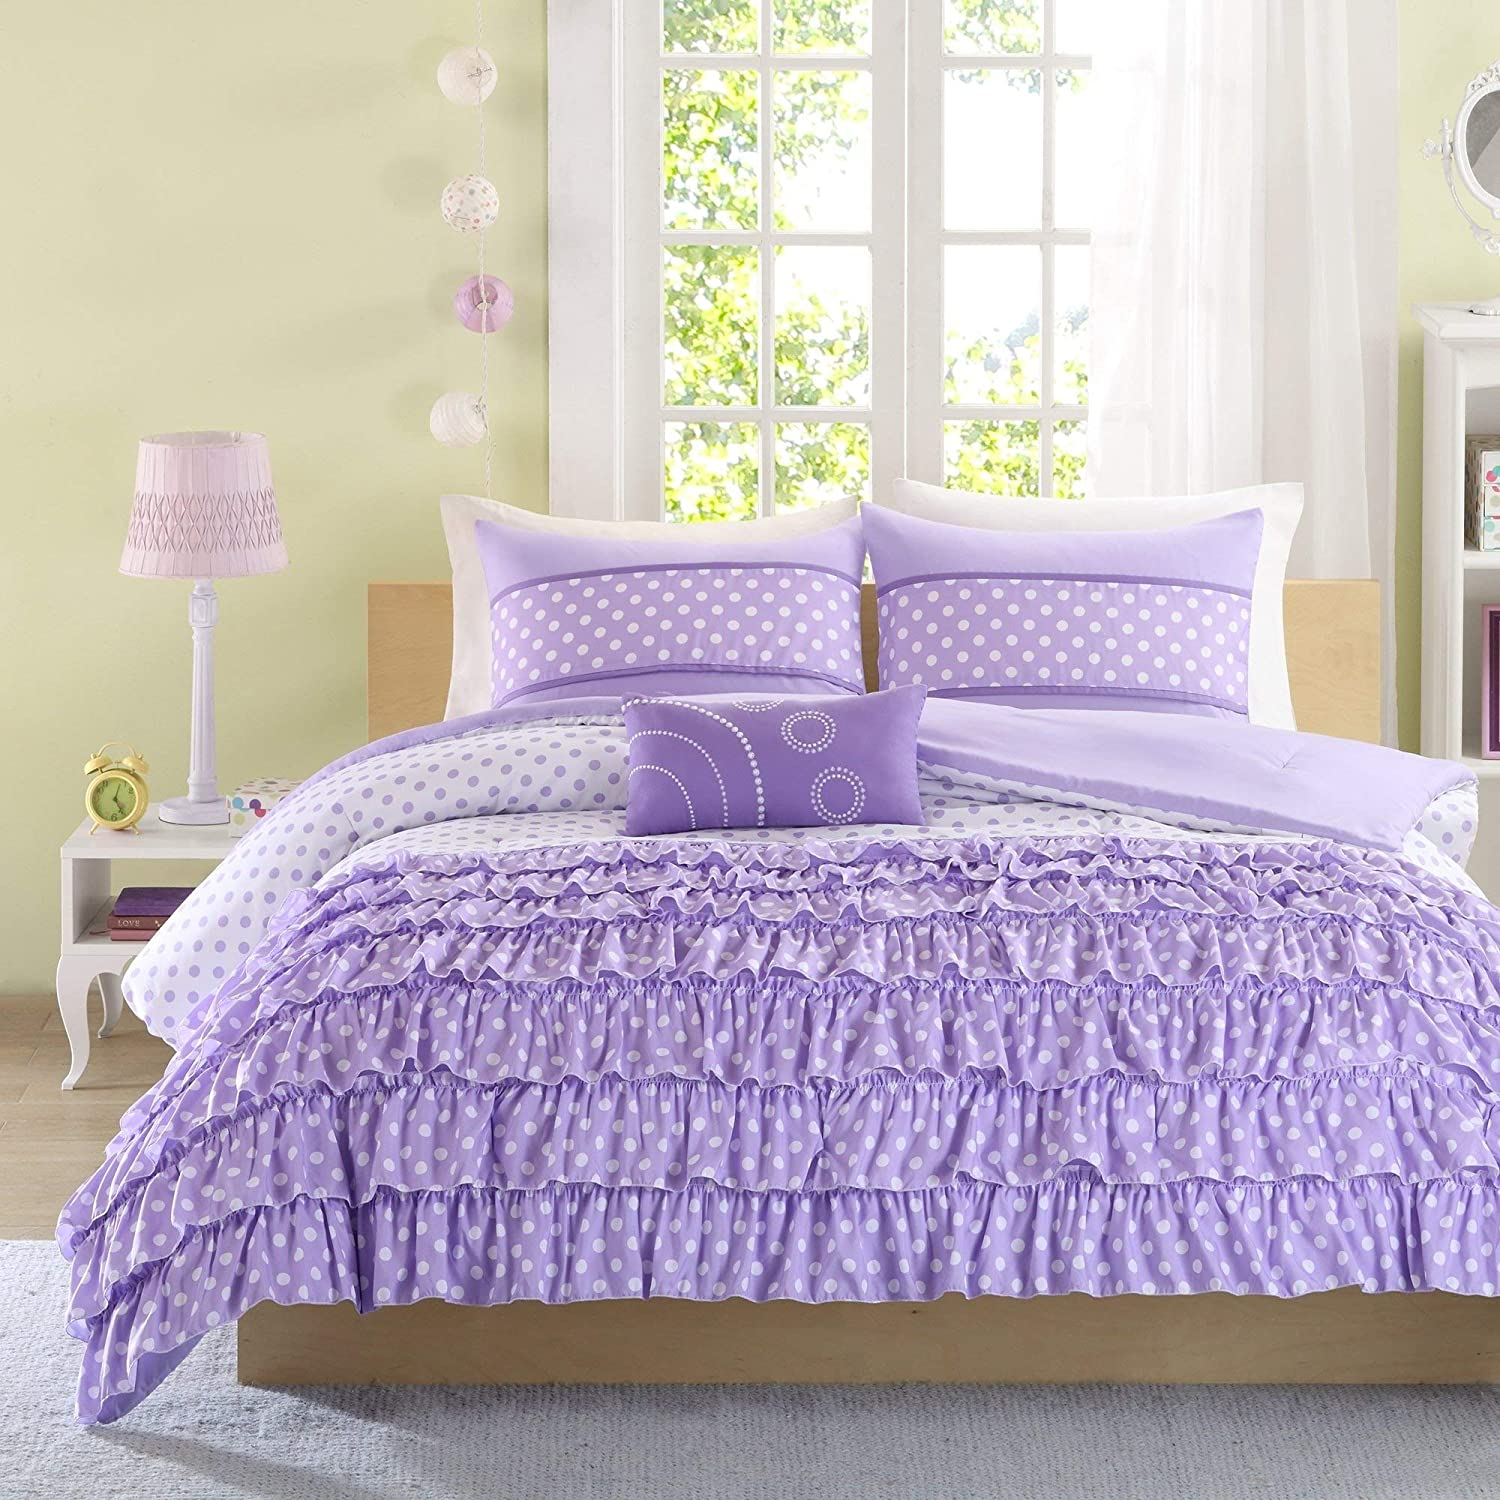 Amazon Com Mizone Girls 4 Piece Comforter Set Purple Full Queen Sets Or Twin For Teens Gorgeous Bedding Your Girl Will Adore This Ruffled